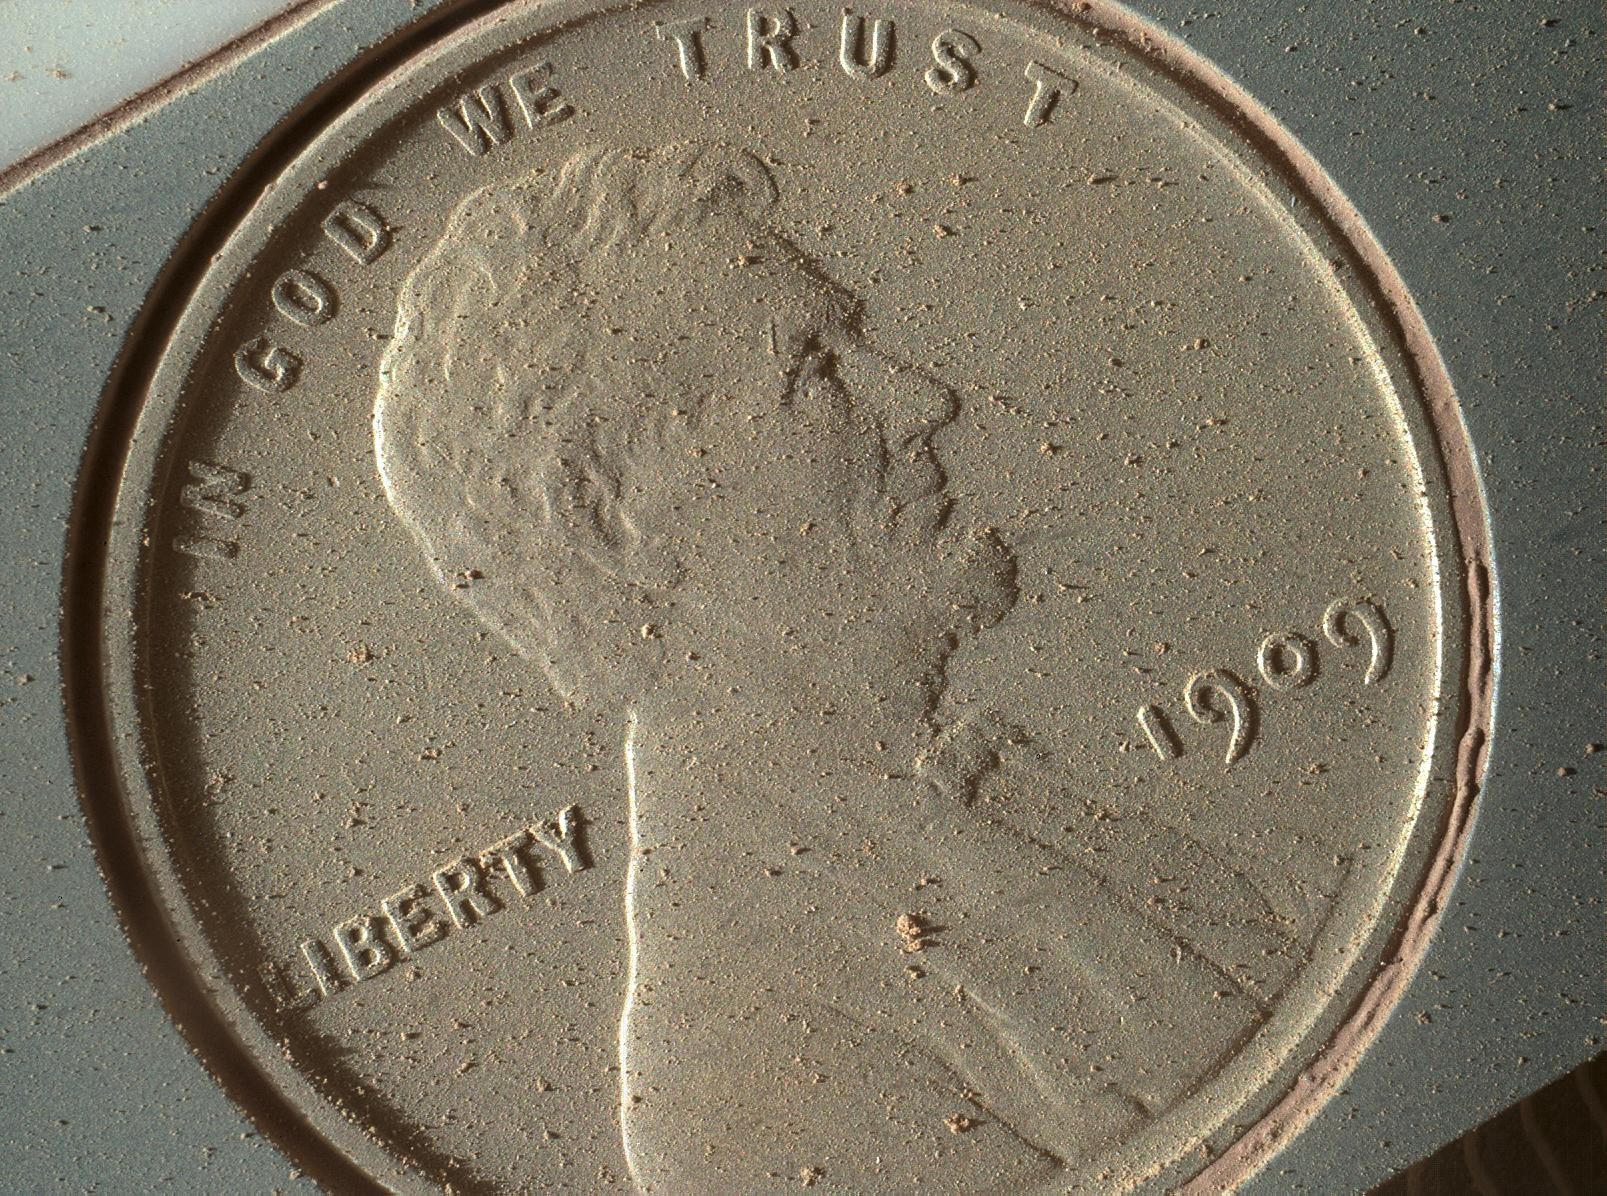 Penny covered with Martian dust.